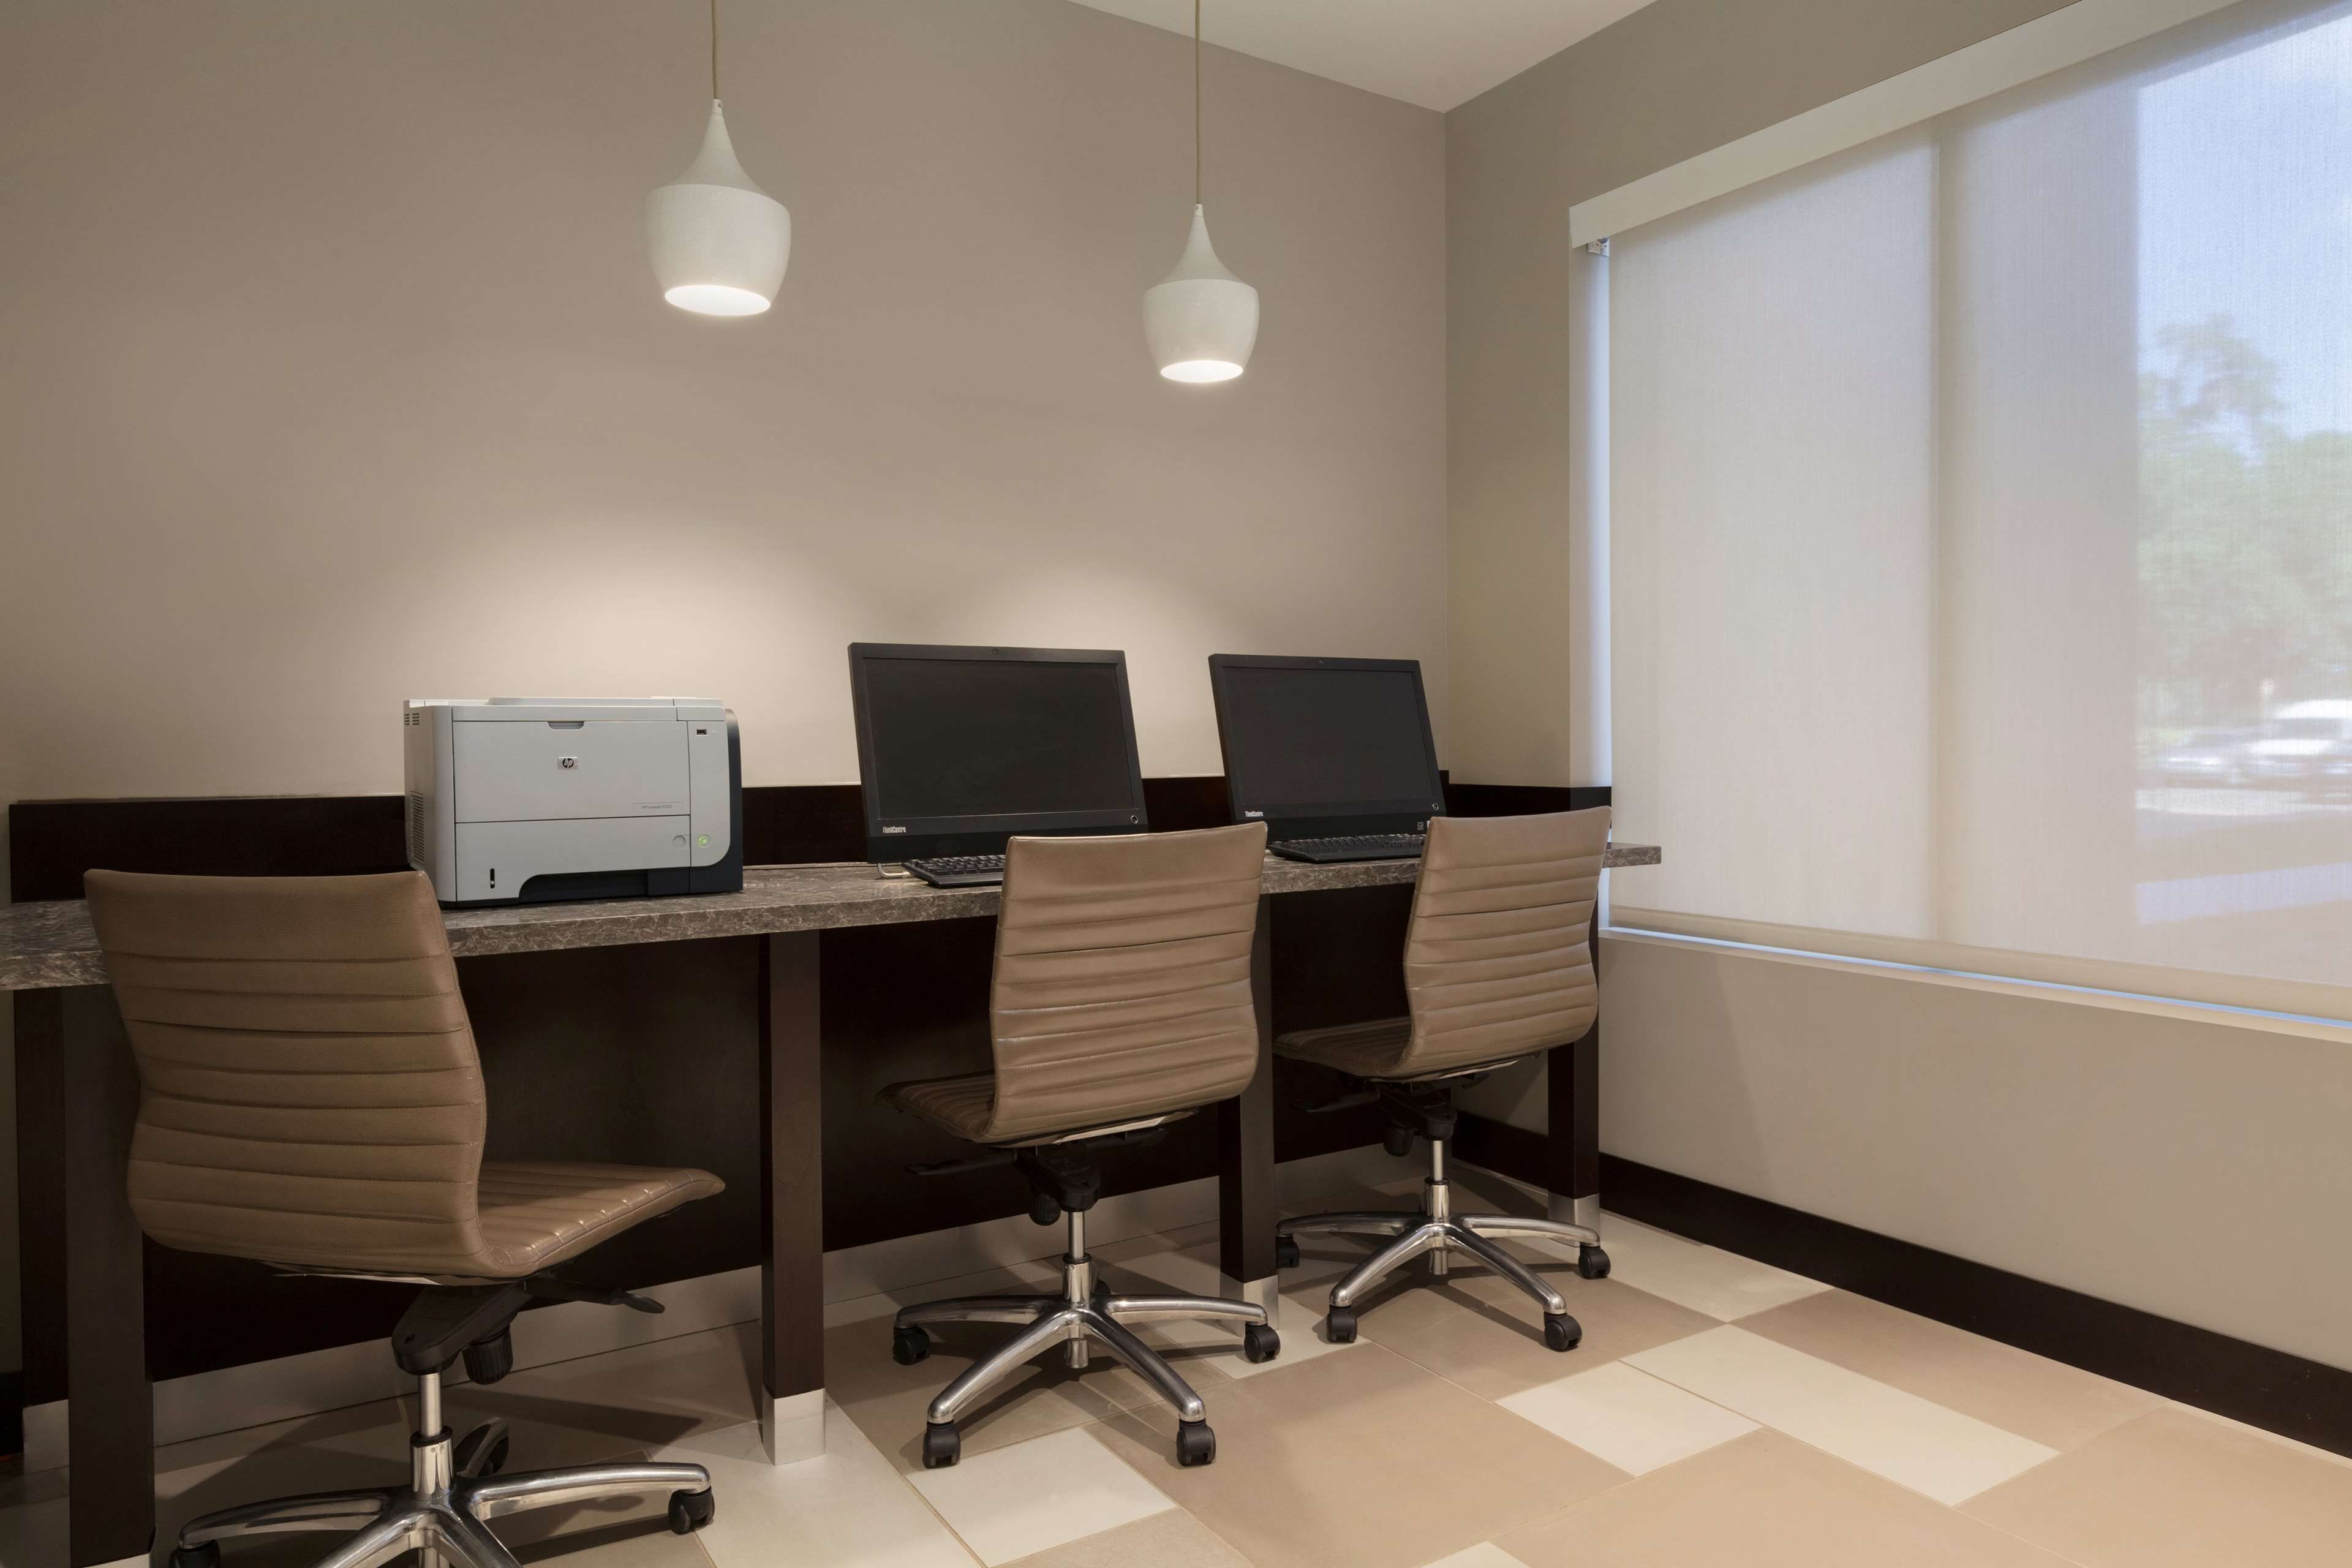 Embassy Suites by Hilton Jacksonville Baymeadows image 34